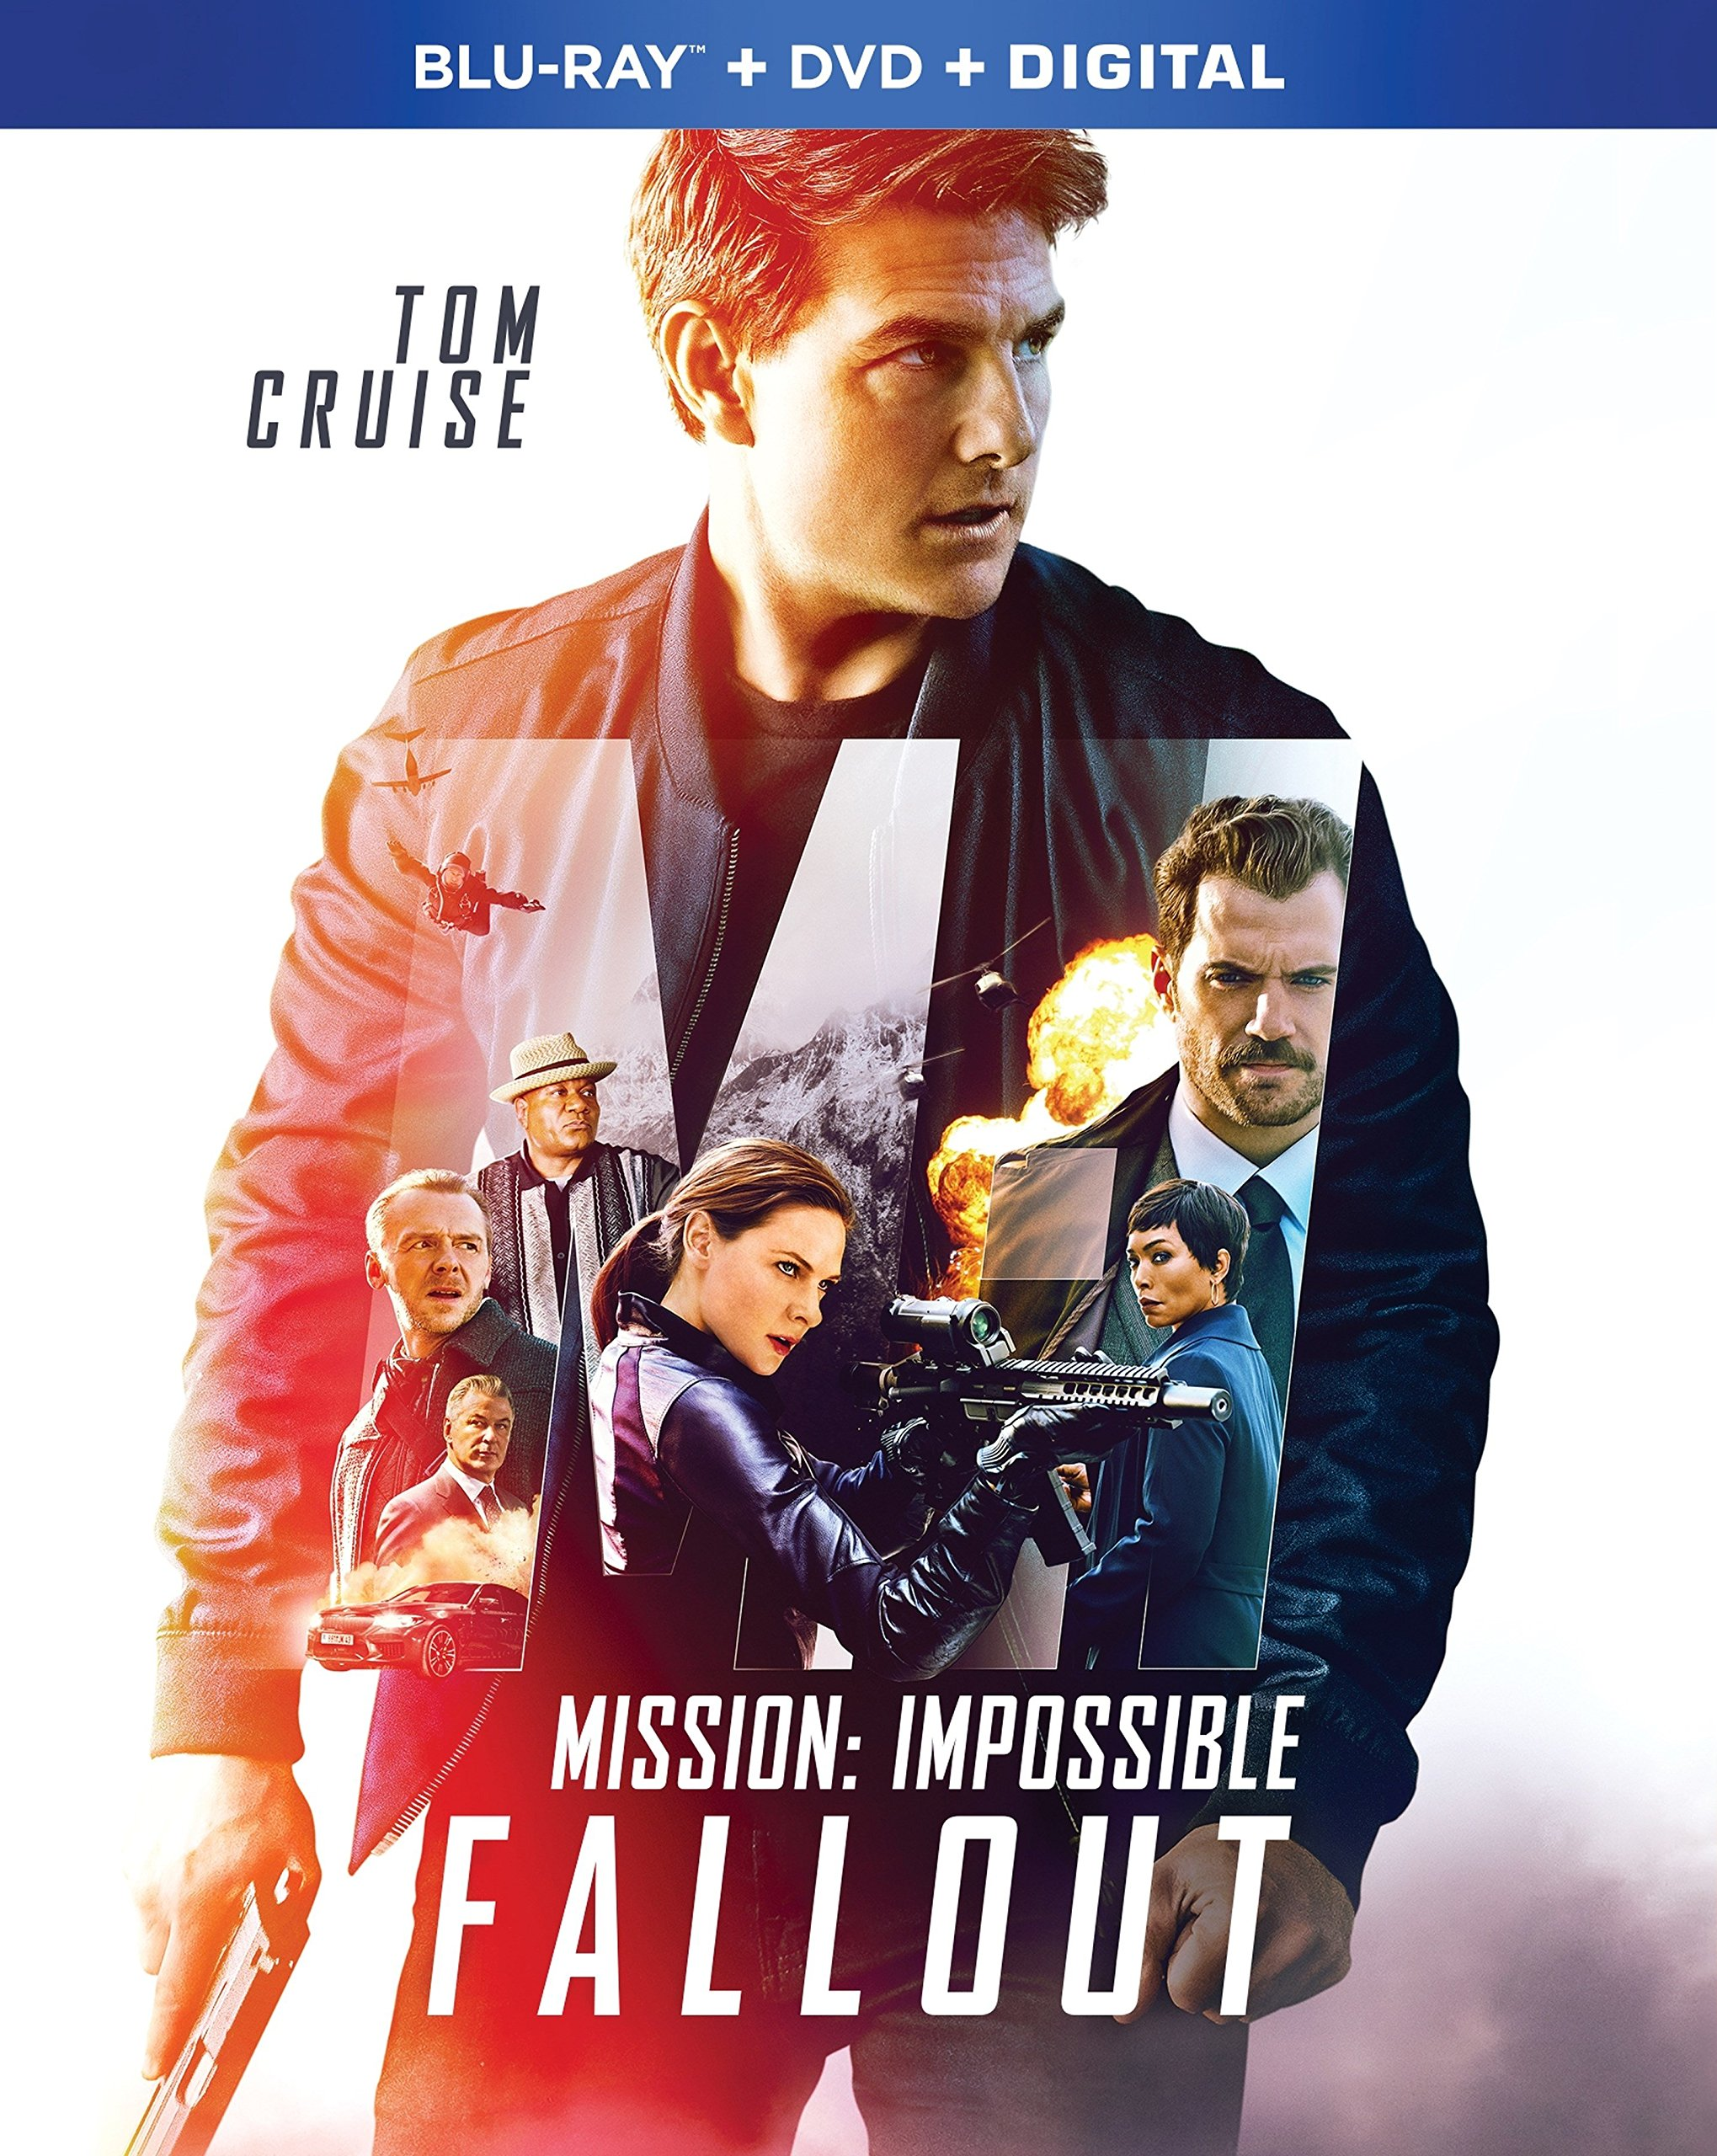 Blu-ray : Mission: Impossible: Fallout (With DVD, 3 Pack, Digital Copy, Dolby, AC-3)